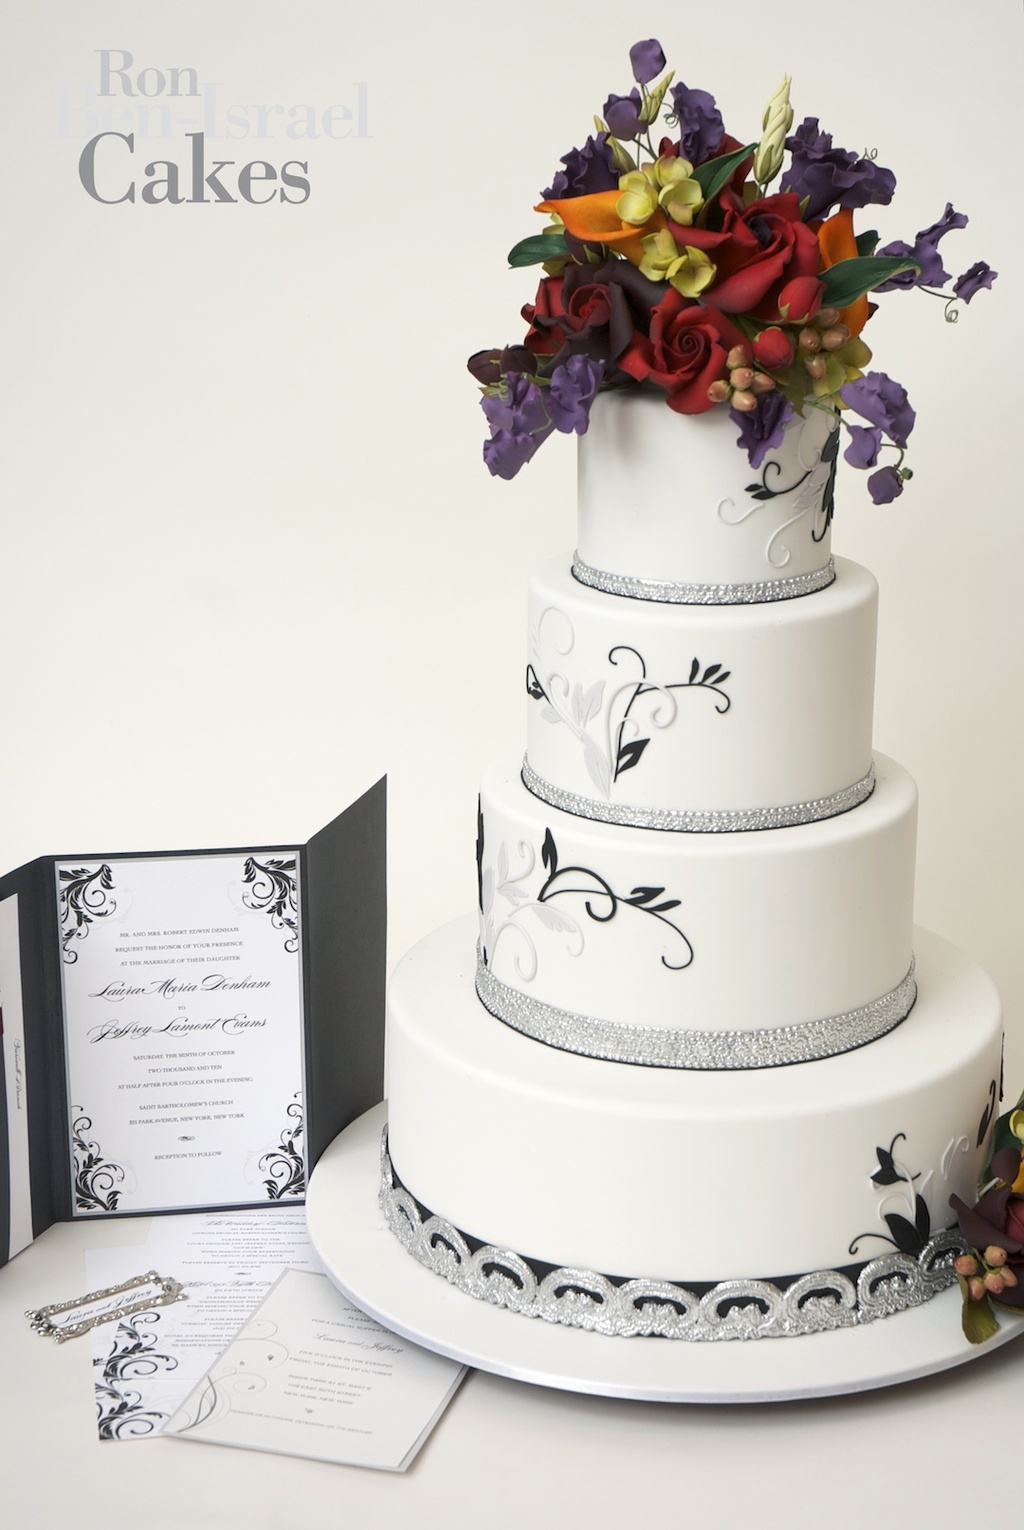 wedding-cake-inspiration-Ron-Ben-Isreal-wedding-cakes-white-silver-with-fall-florals